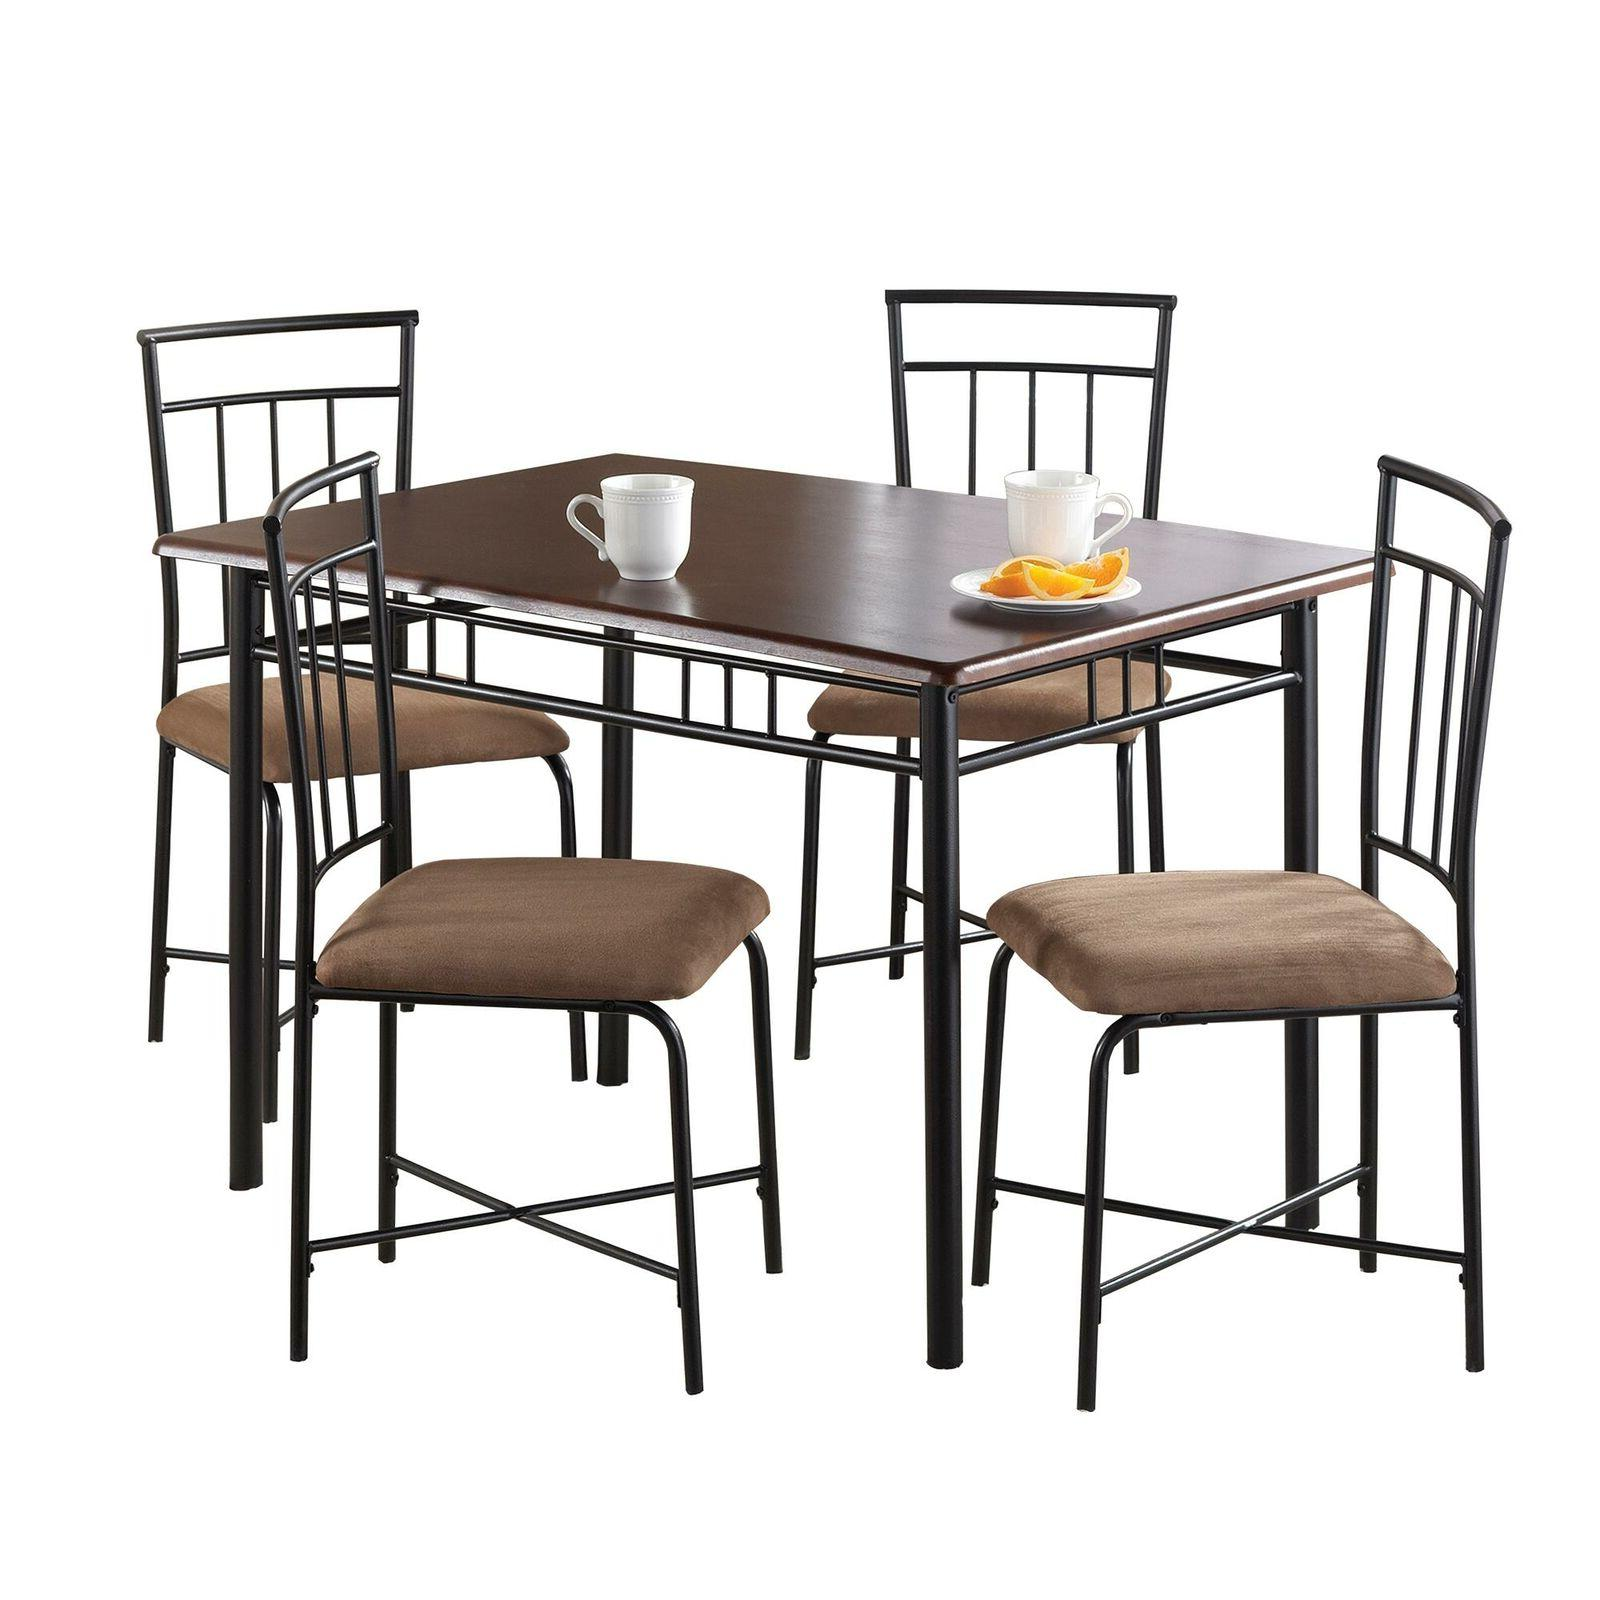 5 Dining Brown Steele with